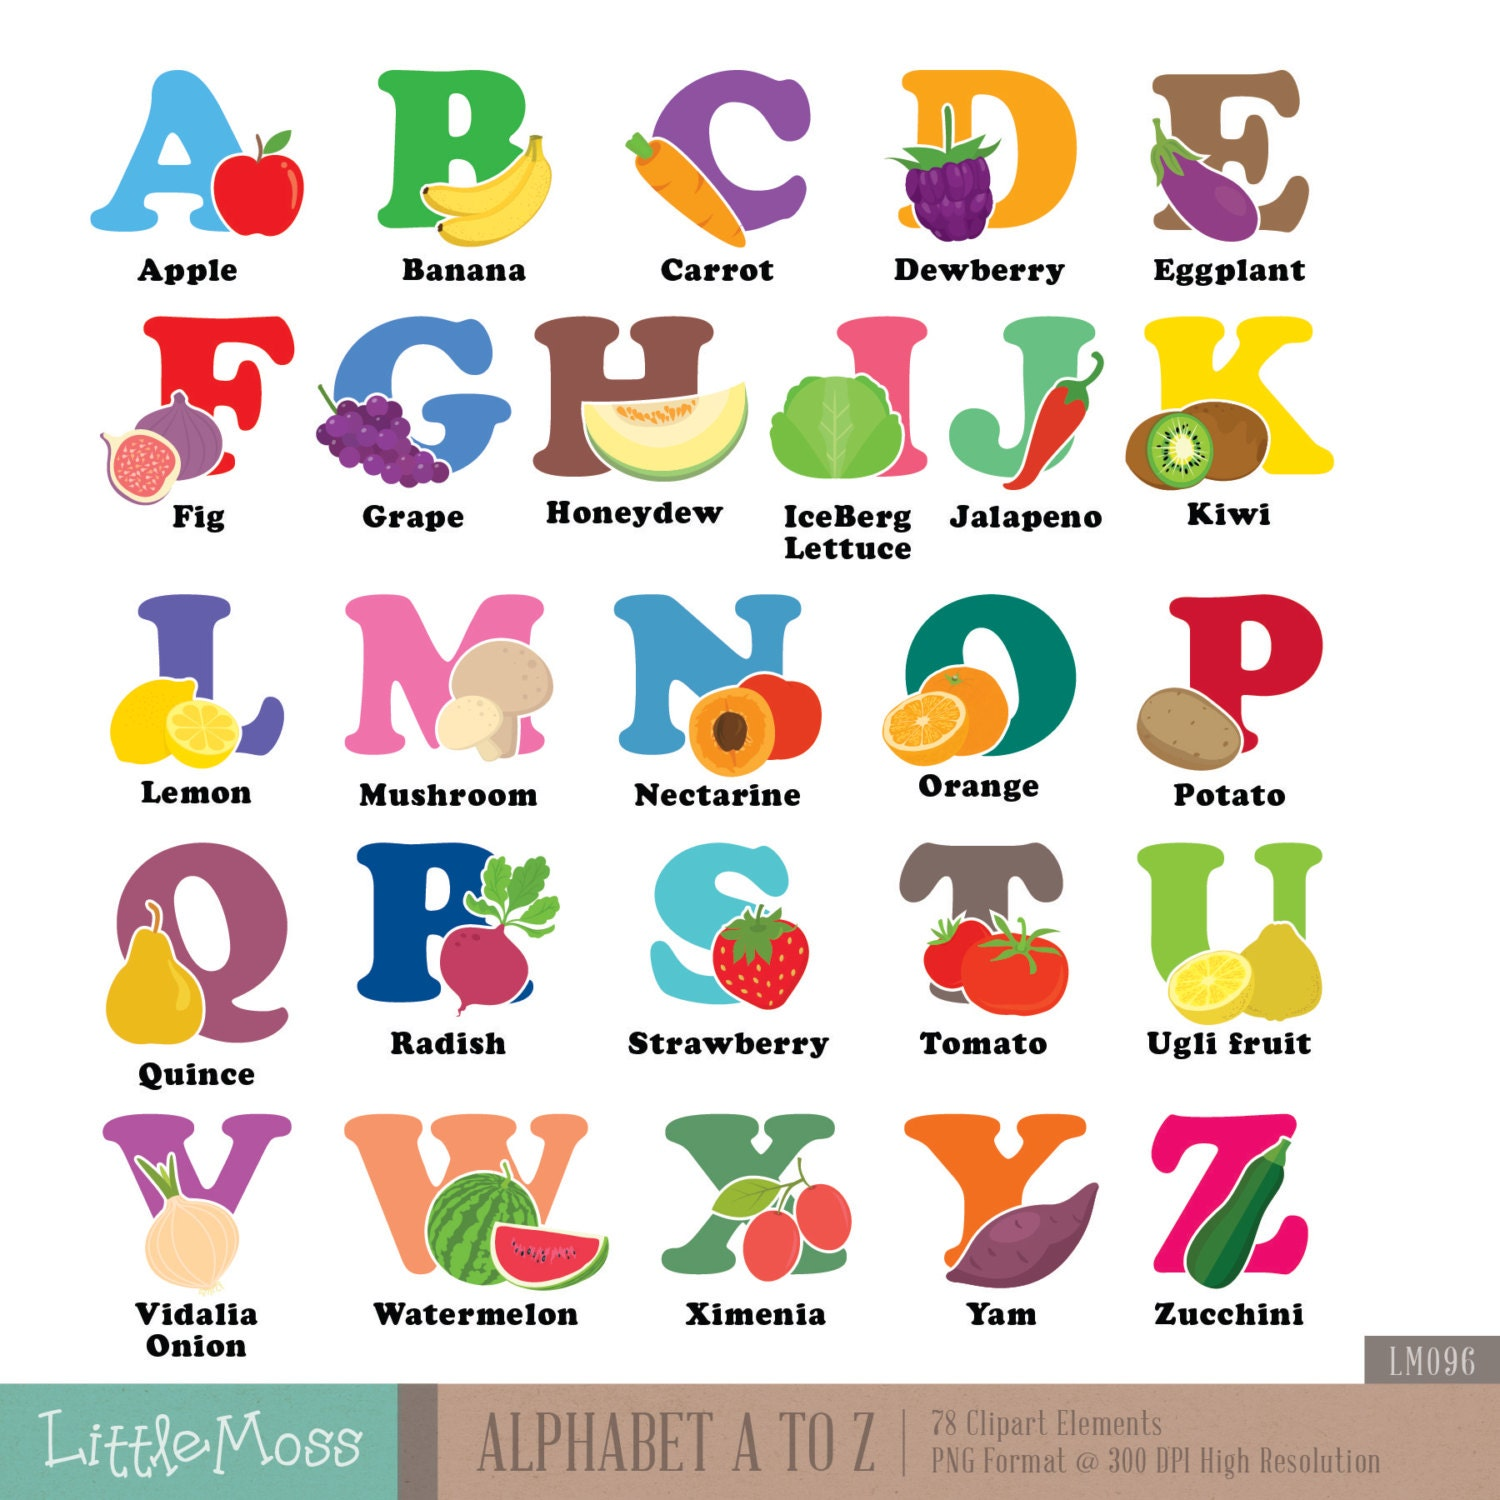 Alphabet A-Z Digital Clipart Vegetable and Fruit Aphabet